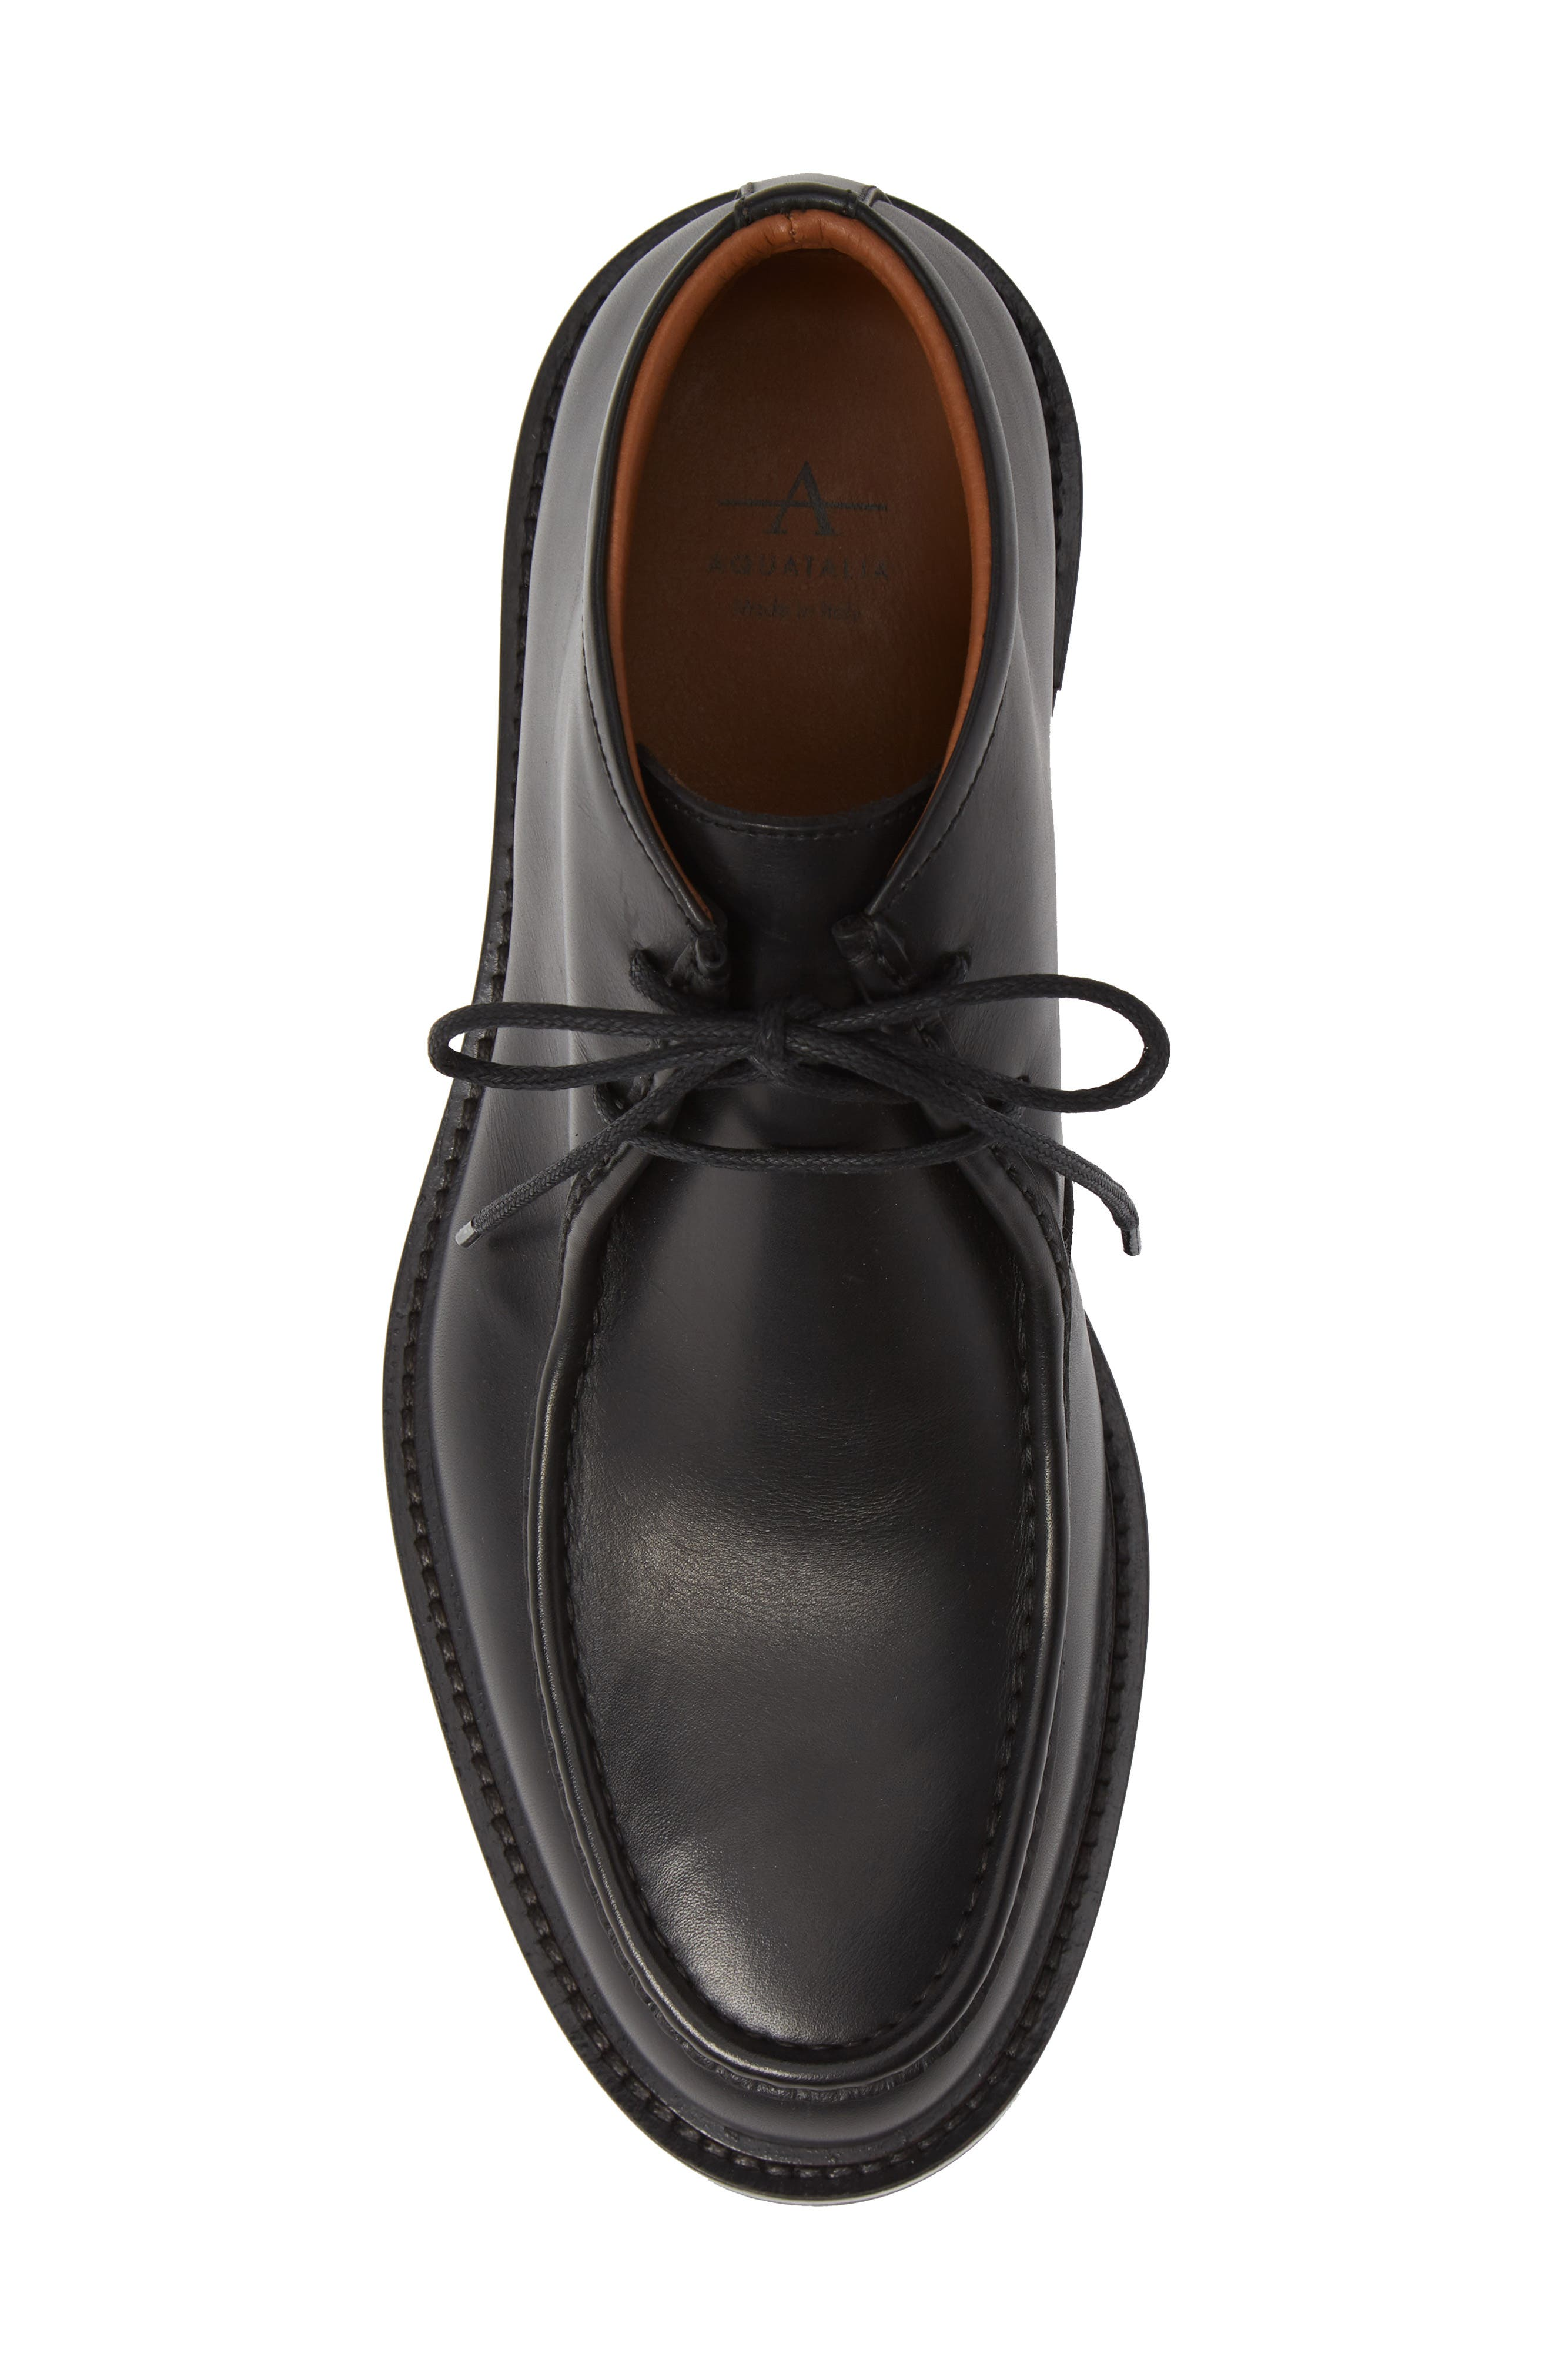 Kyle Weatherproof Chukka Boot,                             Alternate thumbnail 5, color,                             BLACK LEATHER